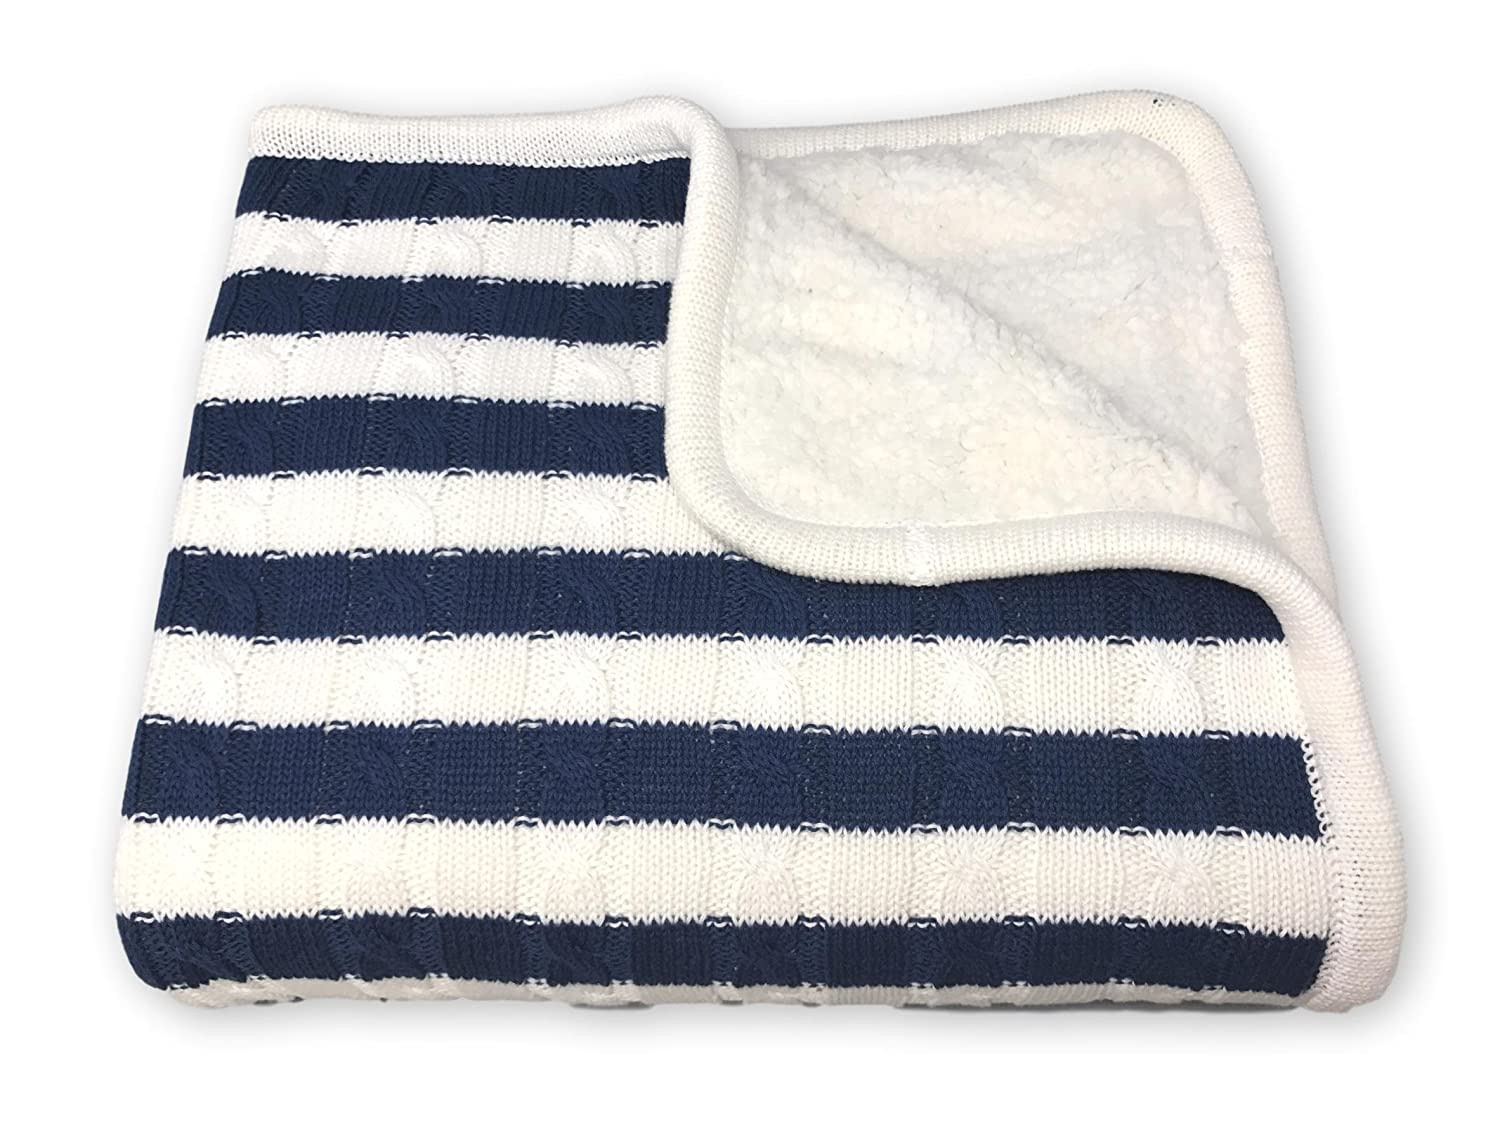 "effe bébé Sweet Stripe Cotton Cable Knit Sherpa Baby Blanket 30""x40"" Slate Blue M&N International Group Inc."